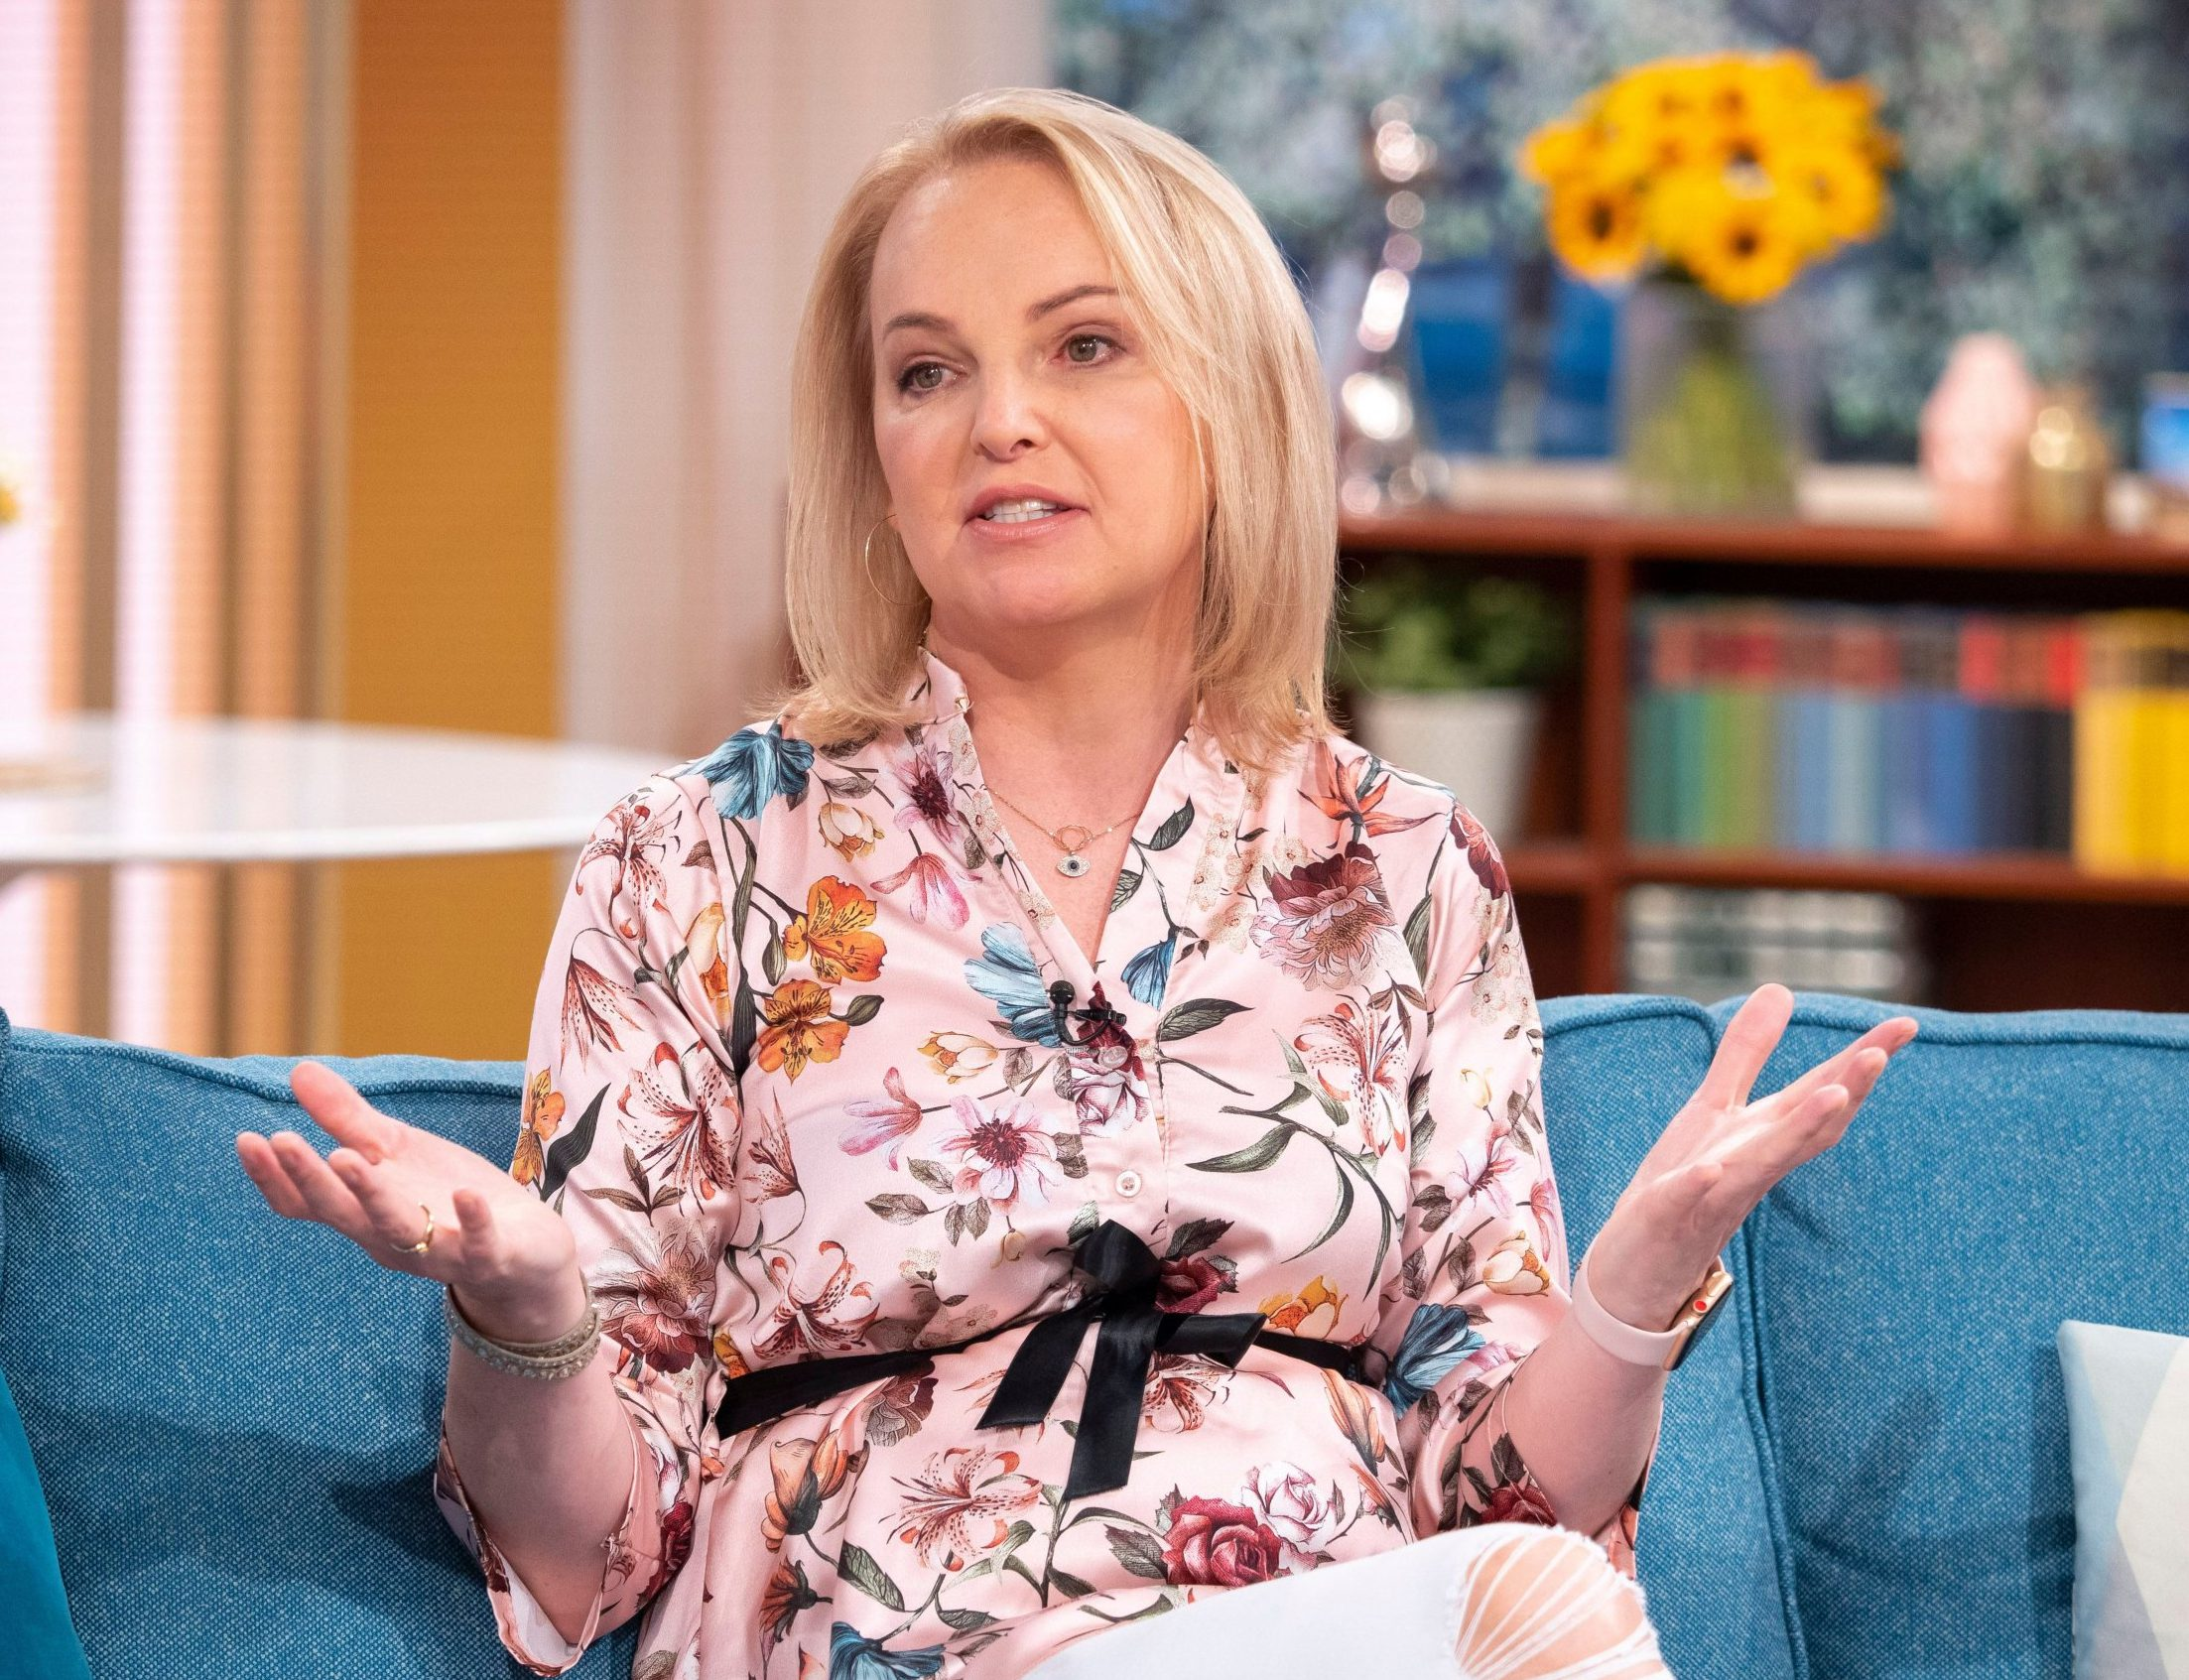 EDITORIAL USE ONLY. NO MERCHANDISING. Mandatory Credit: Photo by Ken McKay/ITV/REX/Shutterstock (9753846bt) India Willoughby 'This Morning' TV show, London, UK - 10 Jul 2018 Transgender newsreader India was trolled after her appearance in CBB for looking too masculine - so she decided to undergo drastic surgery called 'Facial feminisation'. The procedure took 11 hours and surgeons in Spain shaved her brow bone, her orbital lobes around her eyes, had blepharoplasty to open and widen her eyes, a mini face lift, lip lift and a hair transplant. We followed her through the surgery and now she?s on the sofa to exclusively reveal her new face.